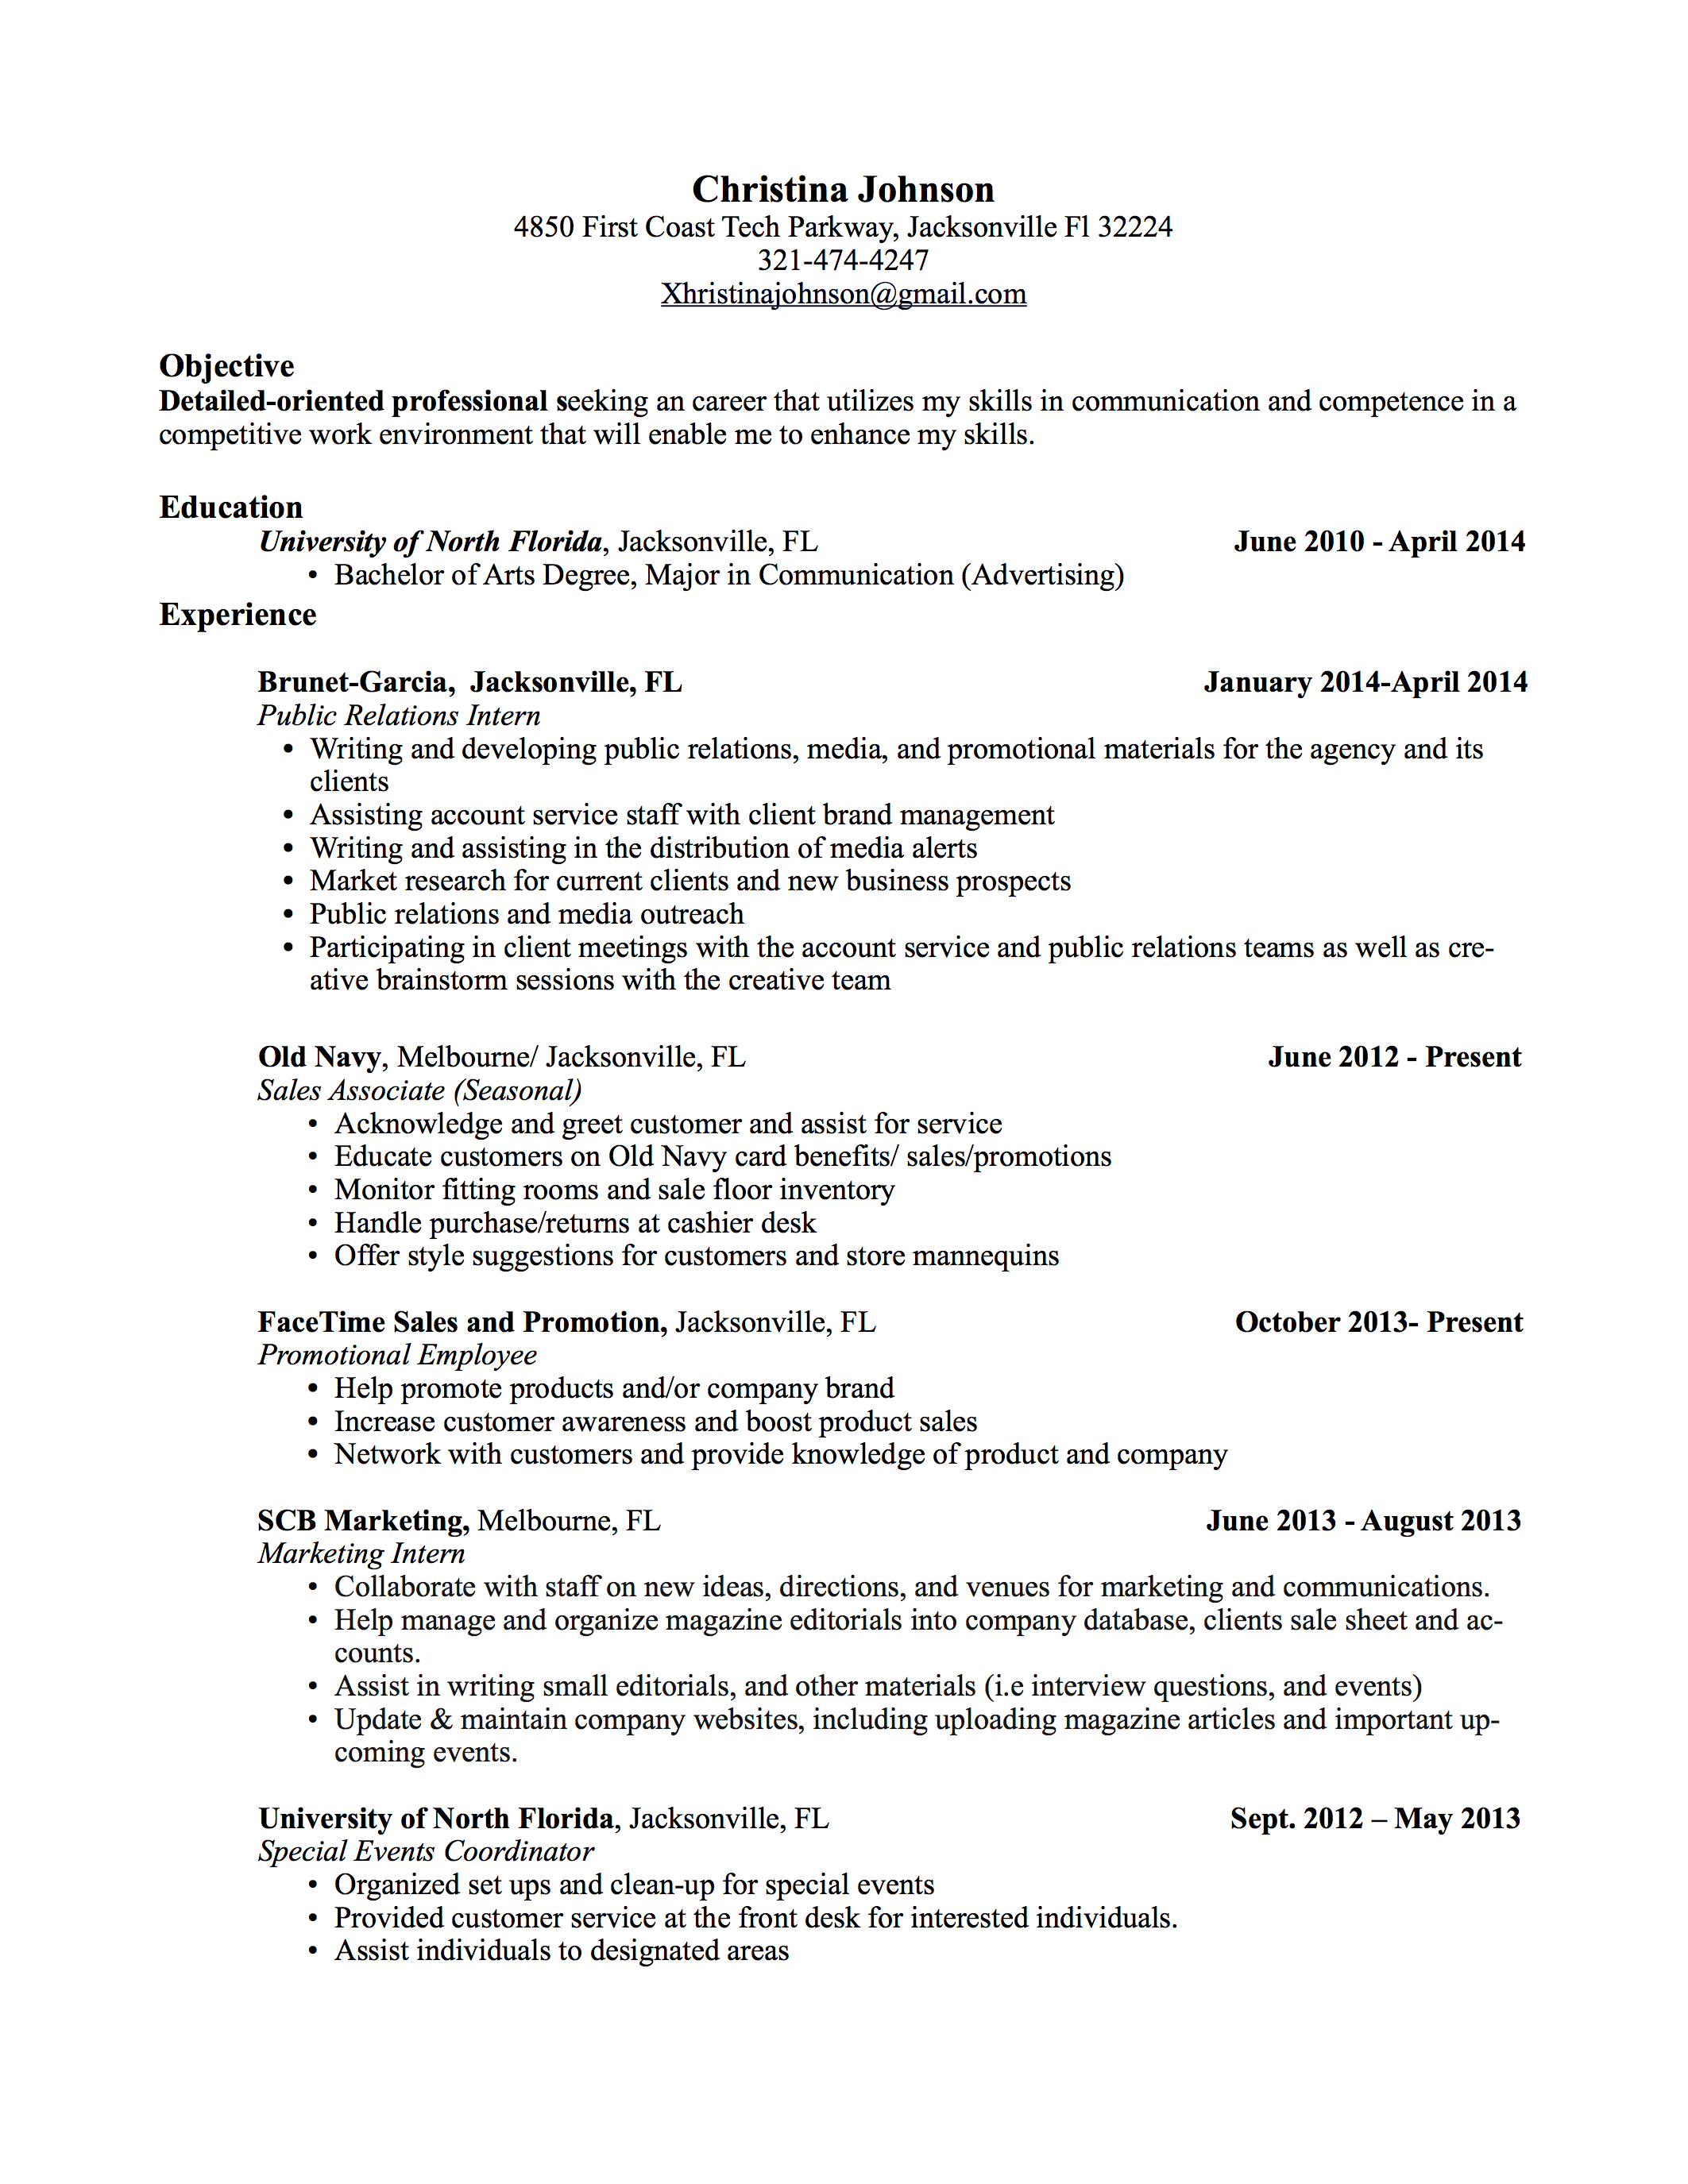 internship resume it resume writing resume examples cover letters internship resume it internship resume examples internships resume christina johnson